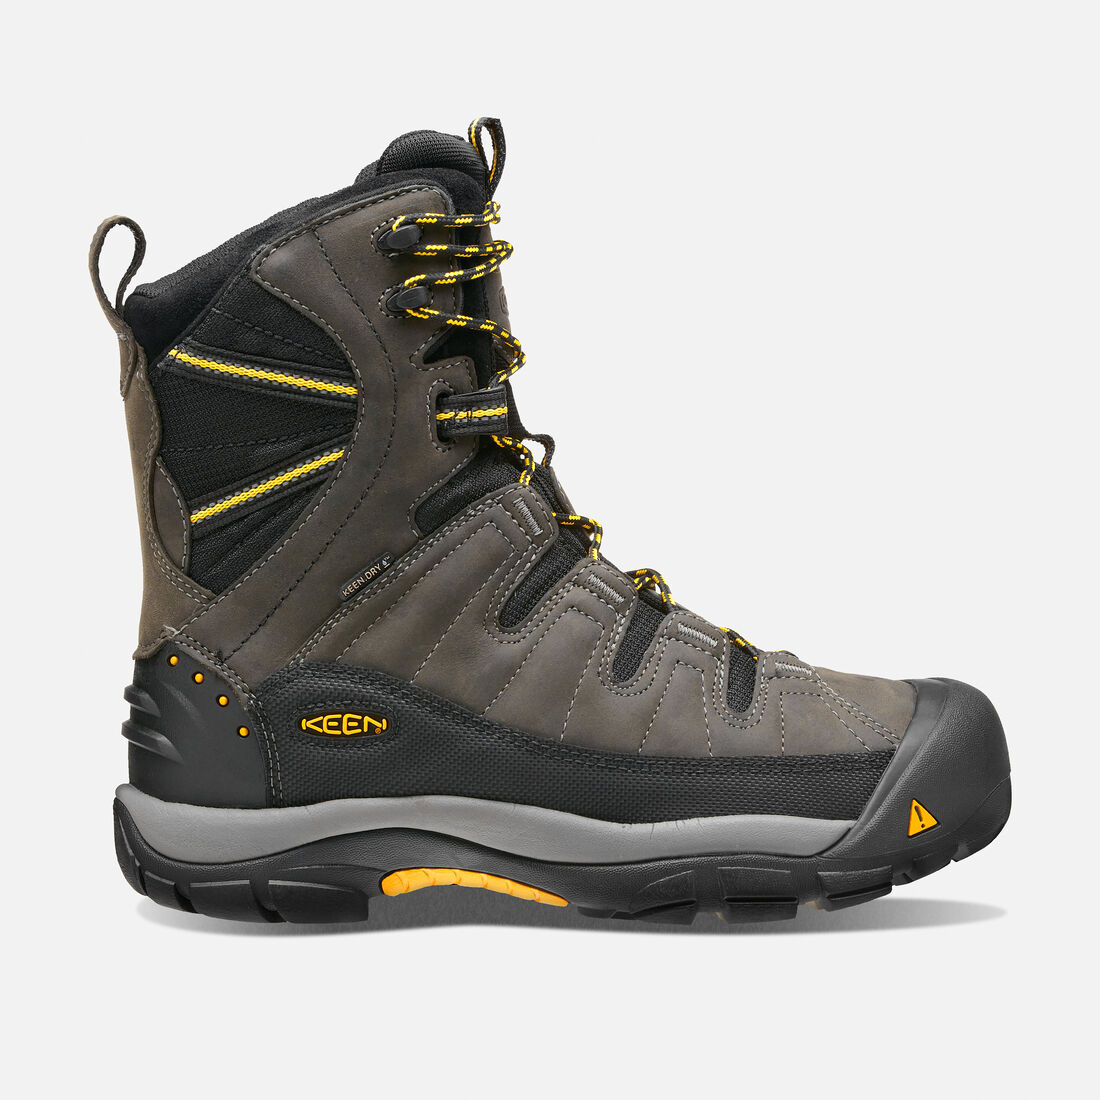 Men's Summit County Waterproof Boot in Dark Shadow/Yellow - large view.